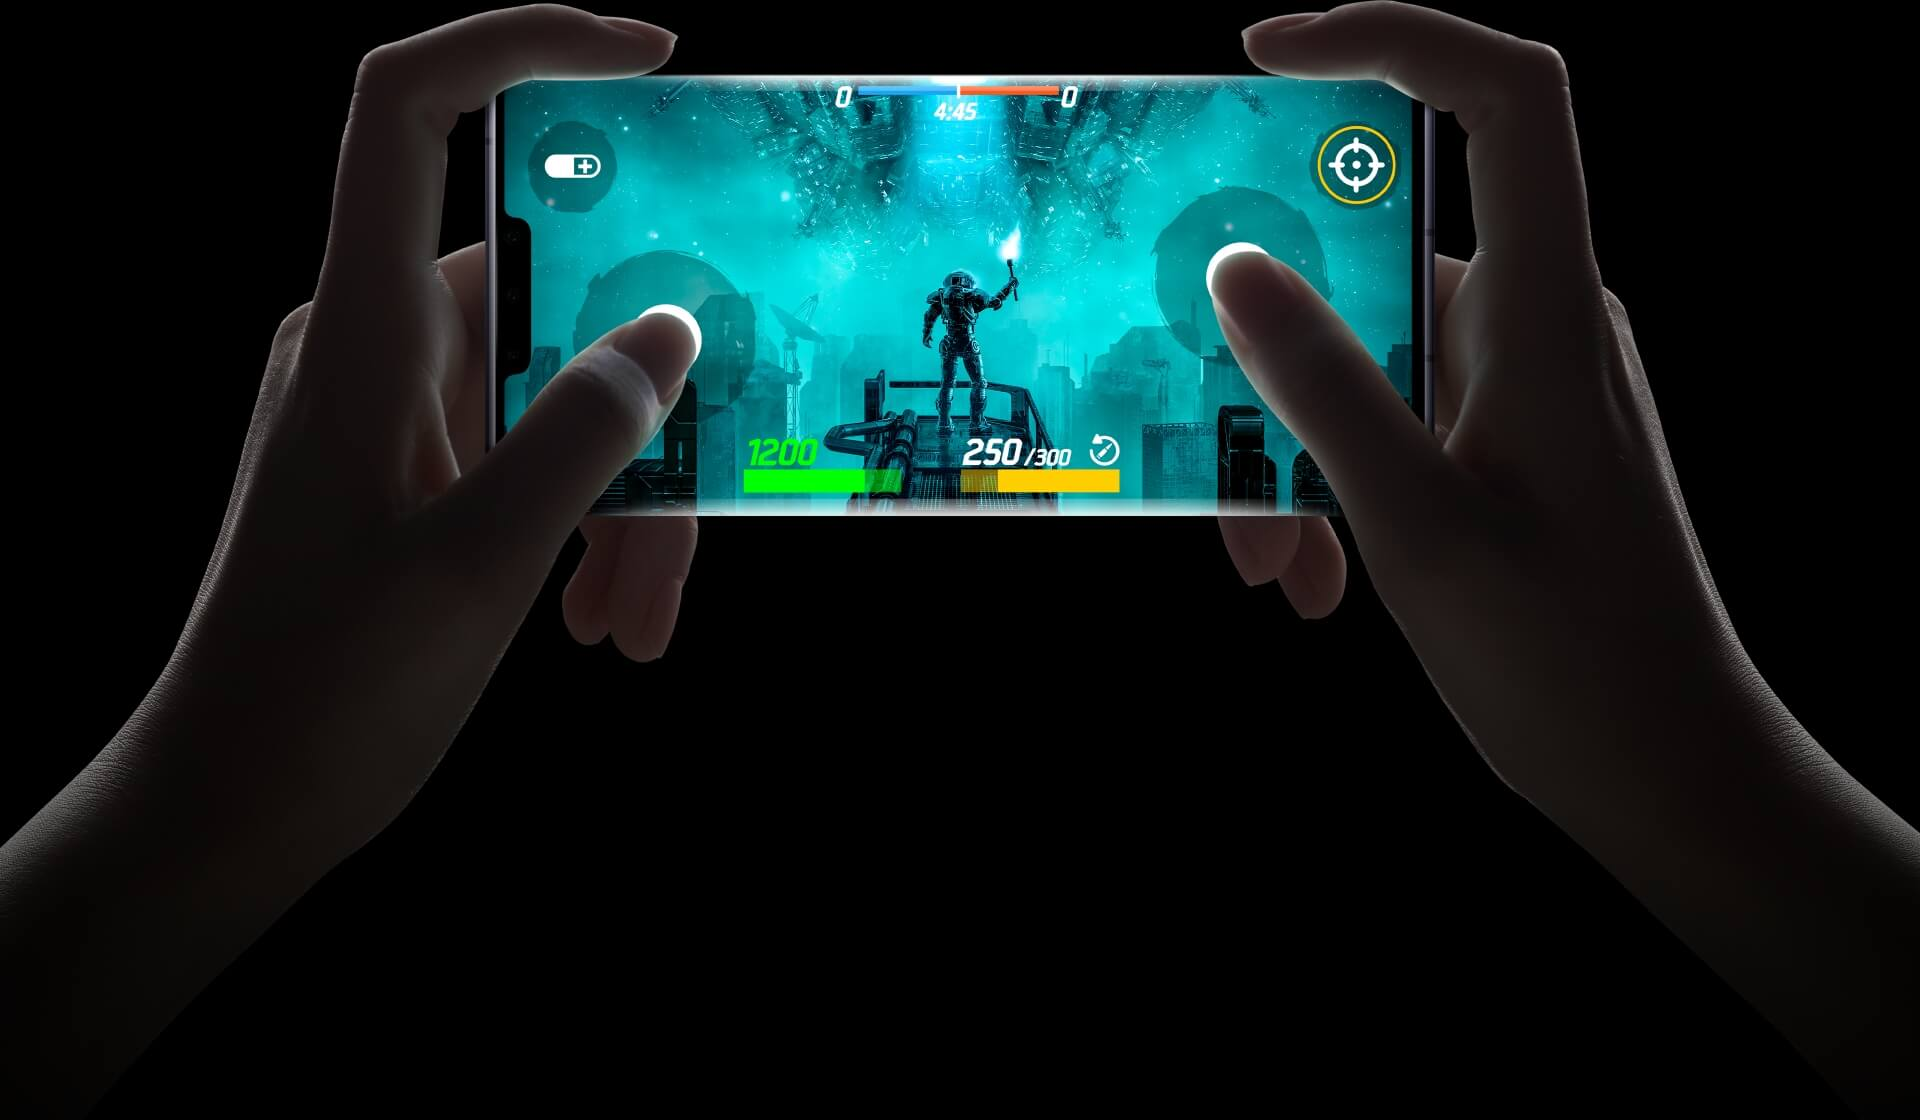 HUAWEI Mate 30 Pro 5G virtual game quad finger control